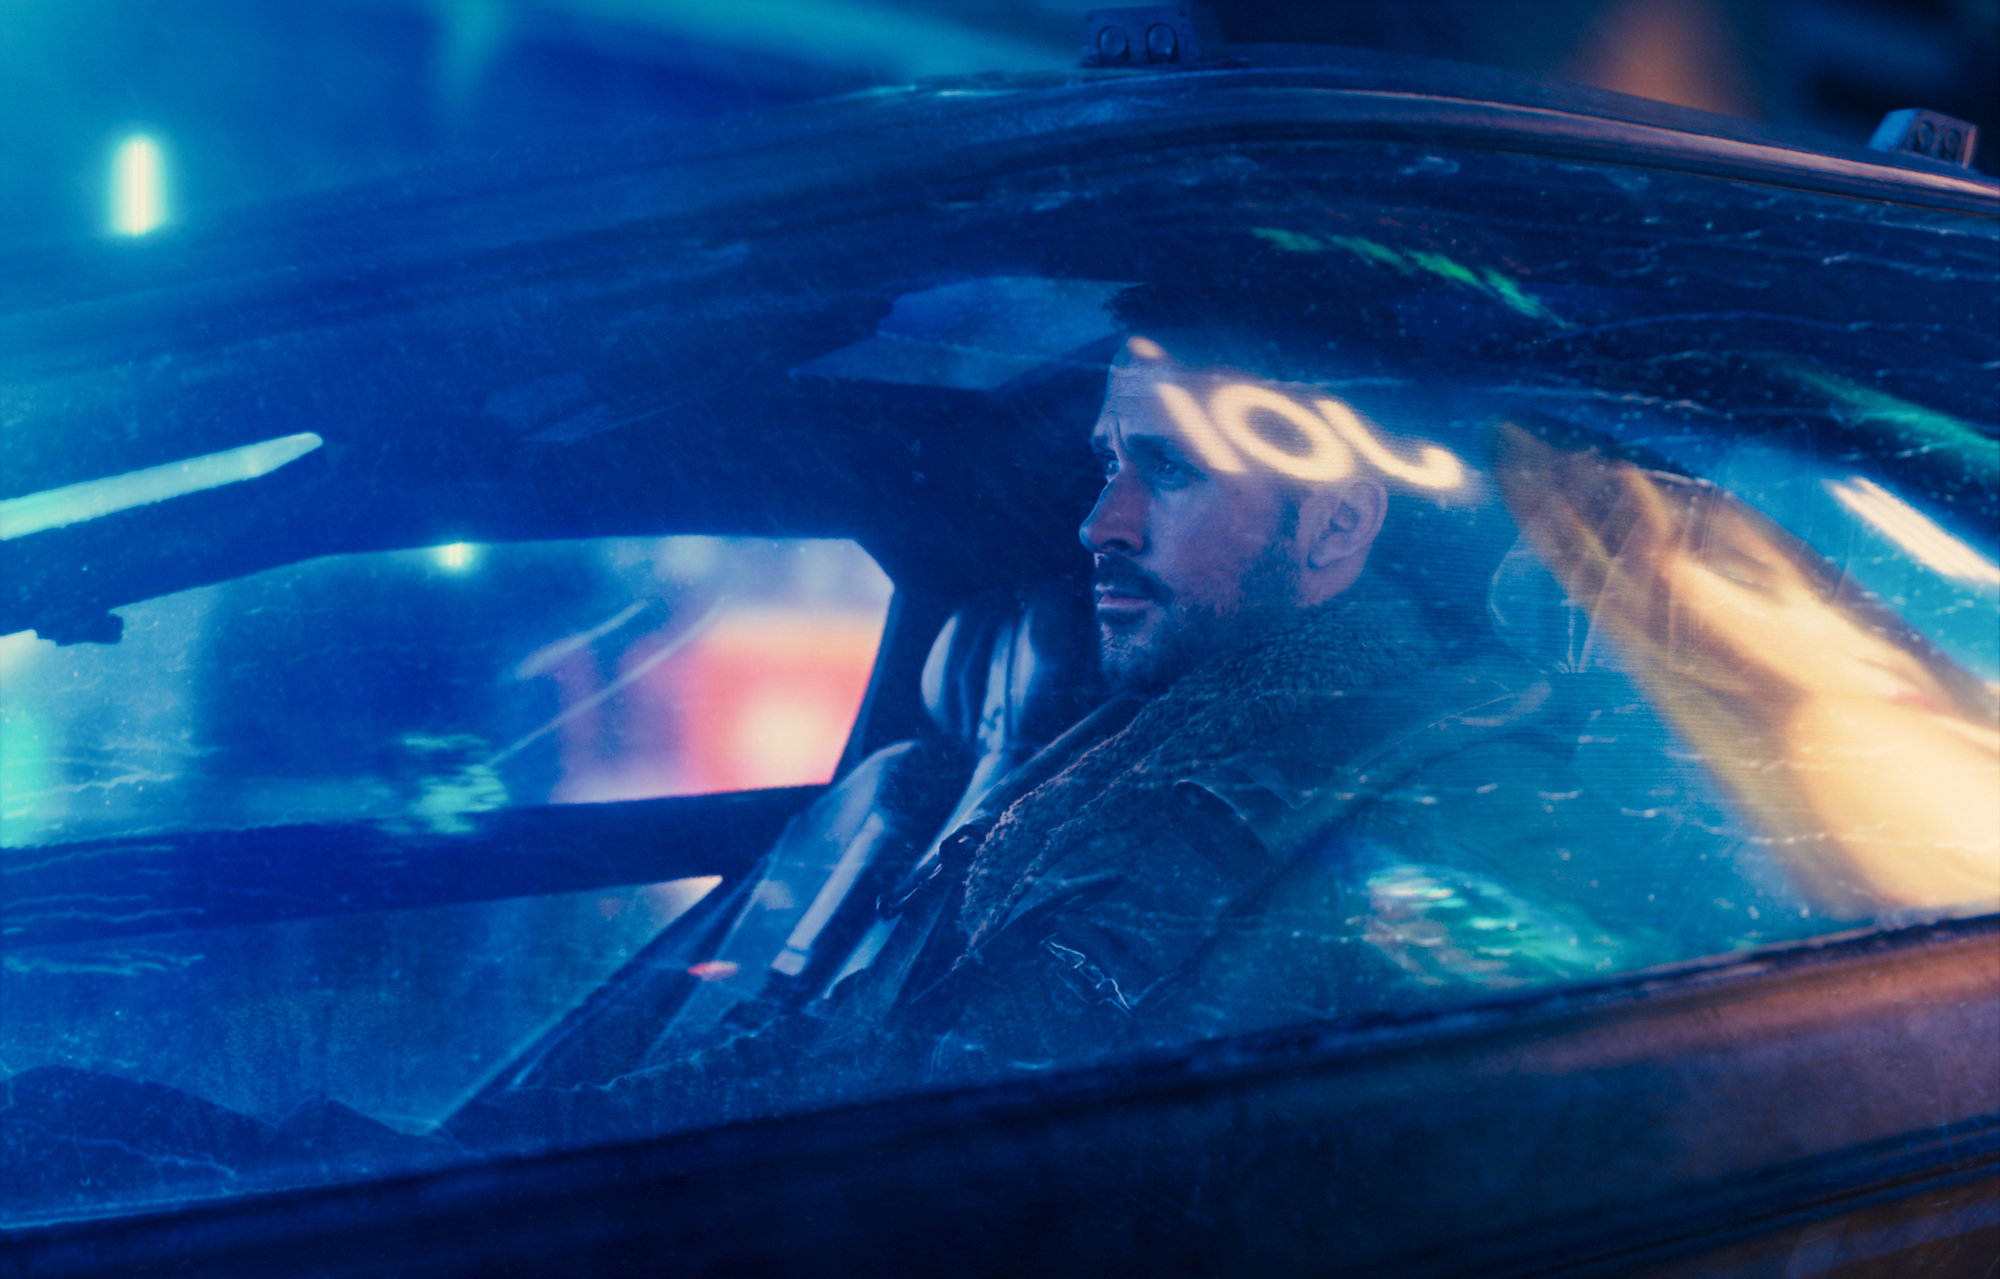 The New Blade Runner 2049 Trailer is Absolutely Stunning